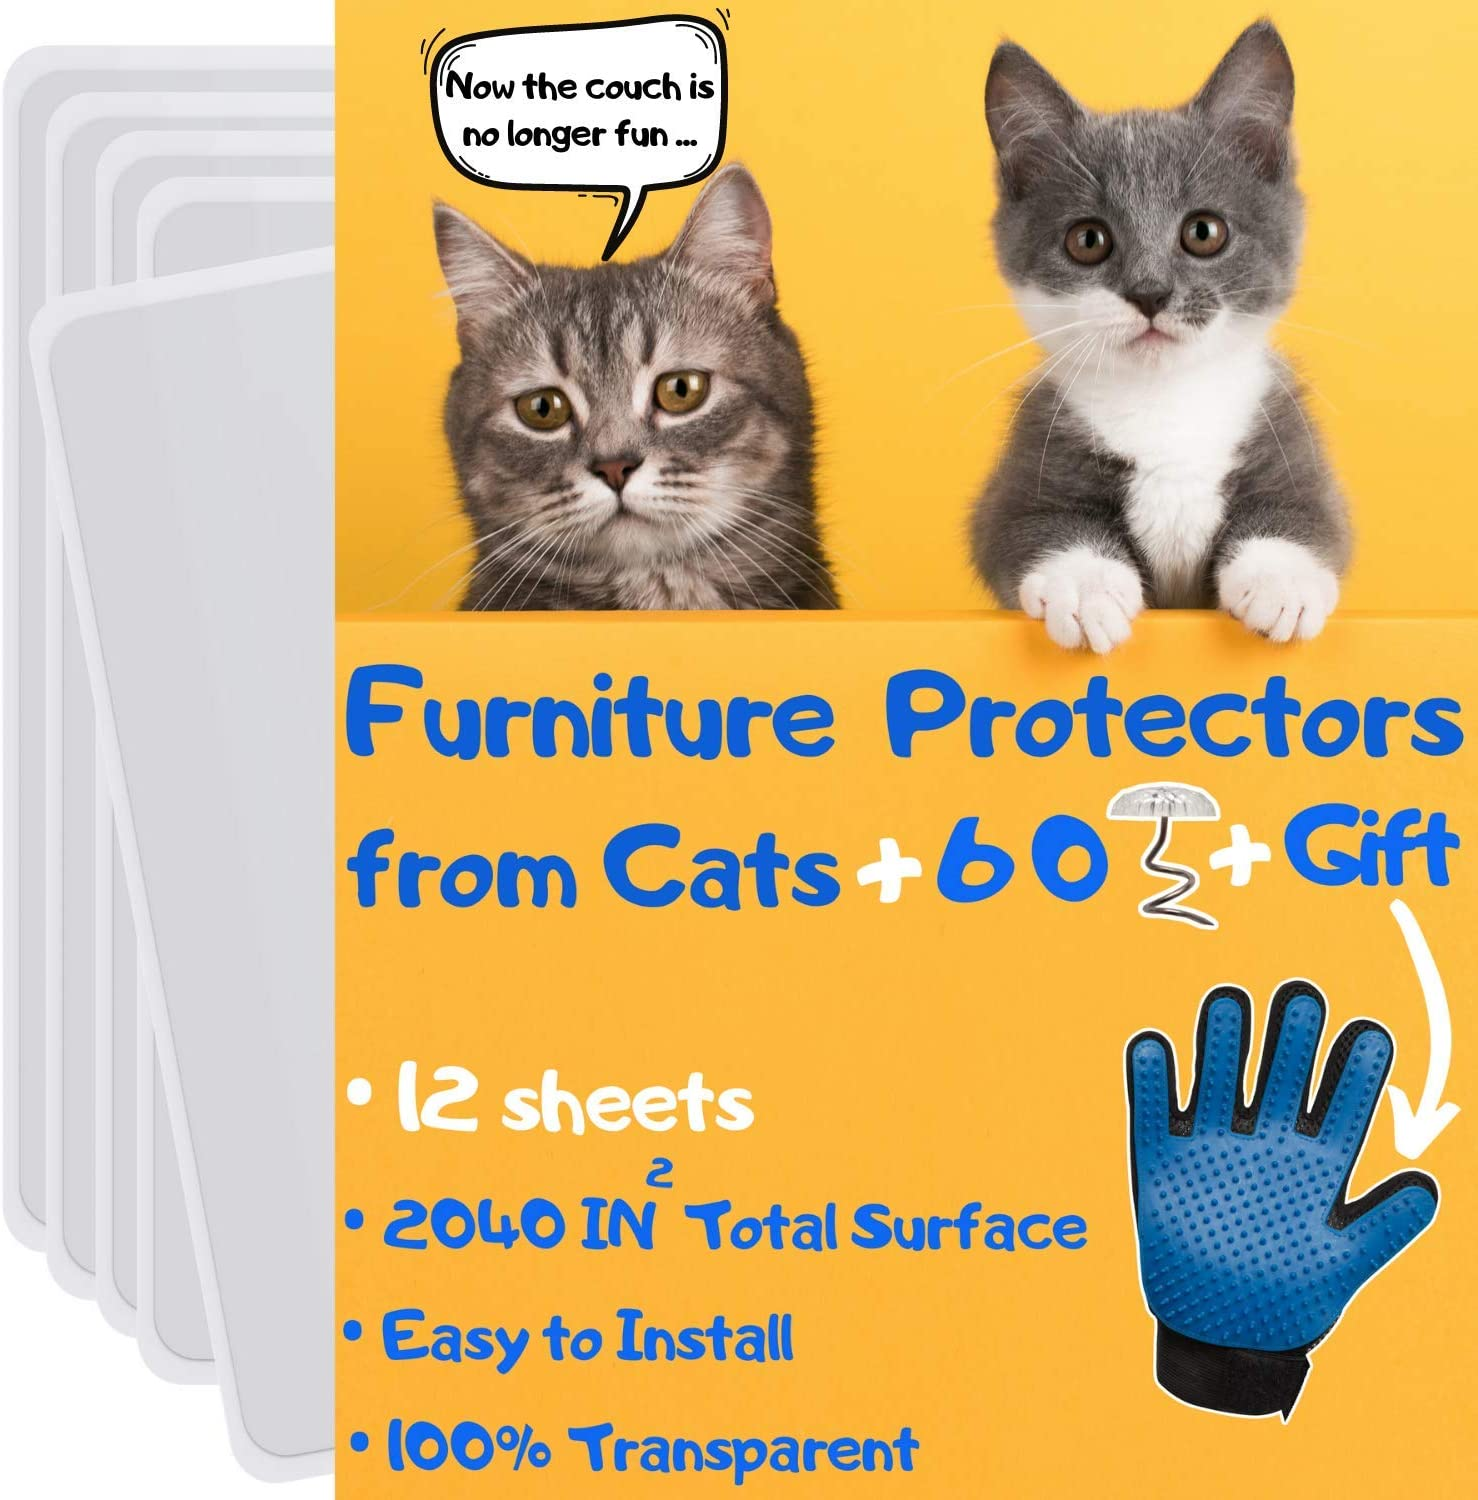 Cat Furniture Protector 12 Pack Cat Couch Protectors For Furniture Furniture Protection From Cat Scratching Couch Protector From Cats Cat Scratch Deterrent Includes Cat Glove Pet Supplies